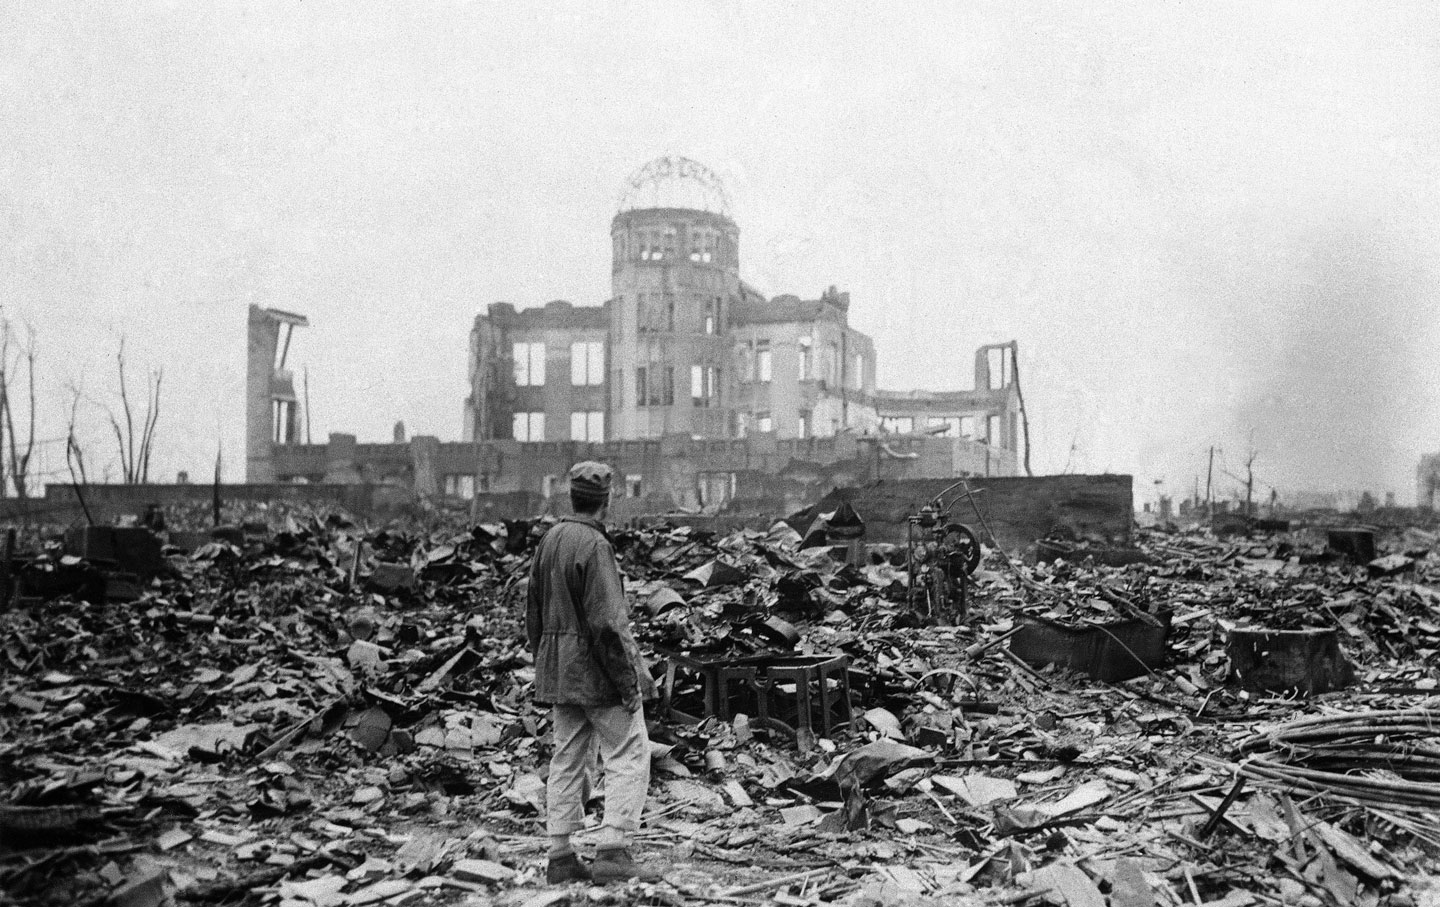 Any good sites for atomic bomb and surrender of japan?